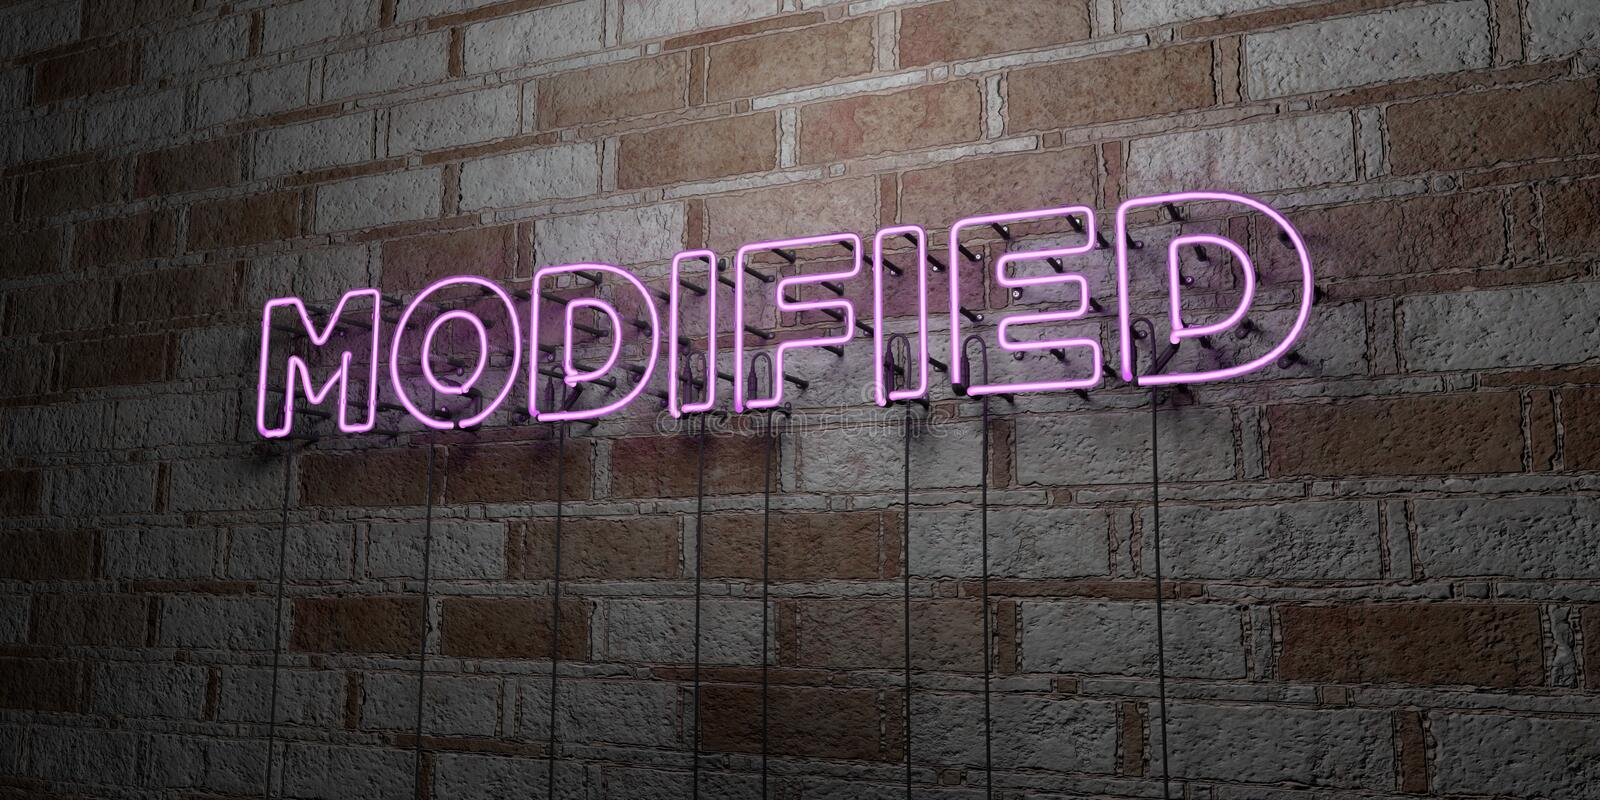 MODIFIED - Glowing Neon Sign on stonework wall - 3D rendered royalty free stock illustration royalty free illustration